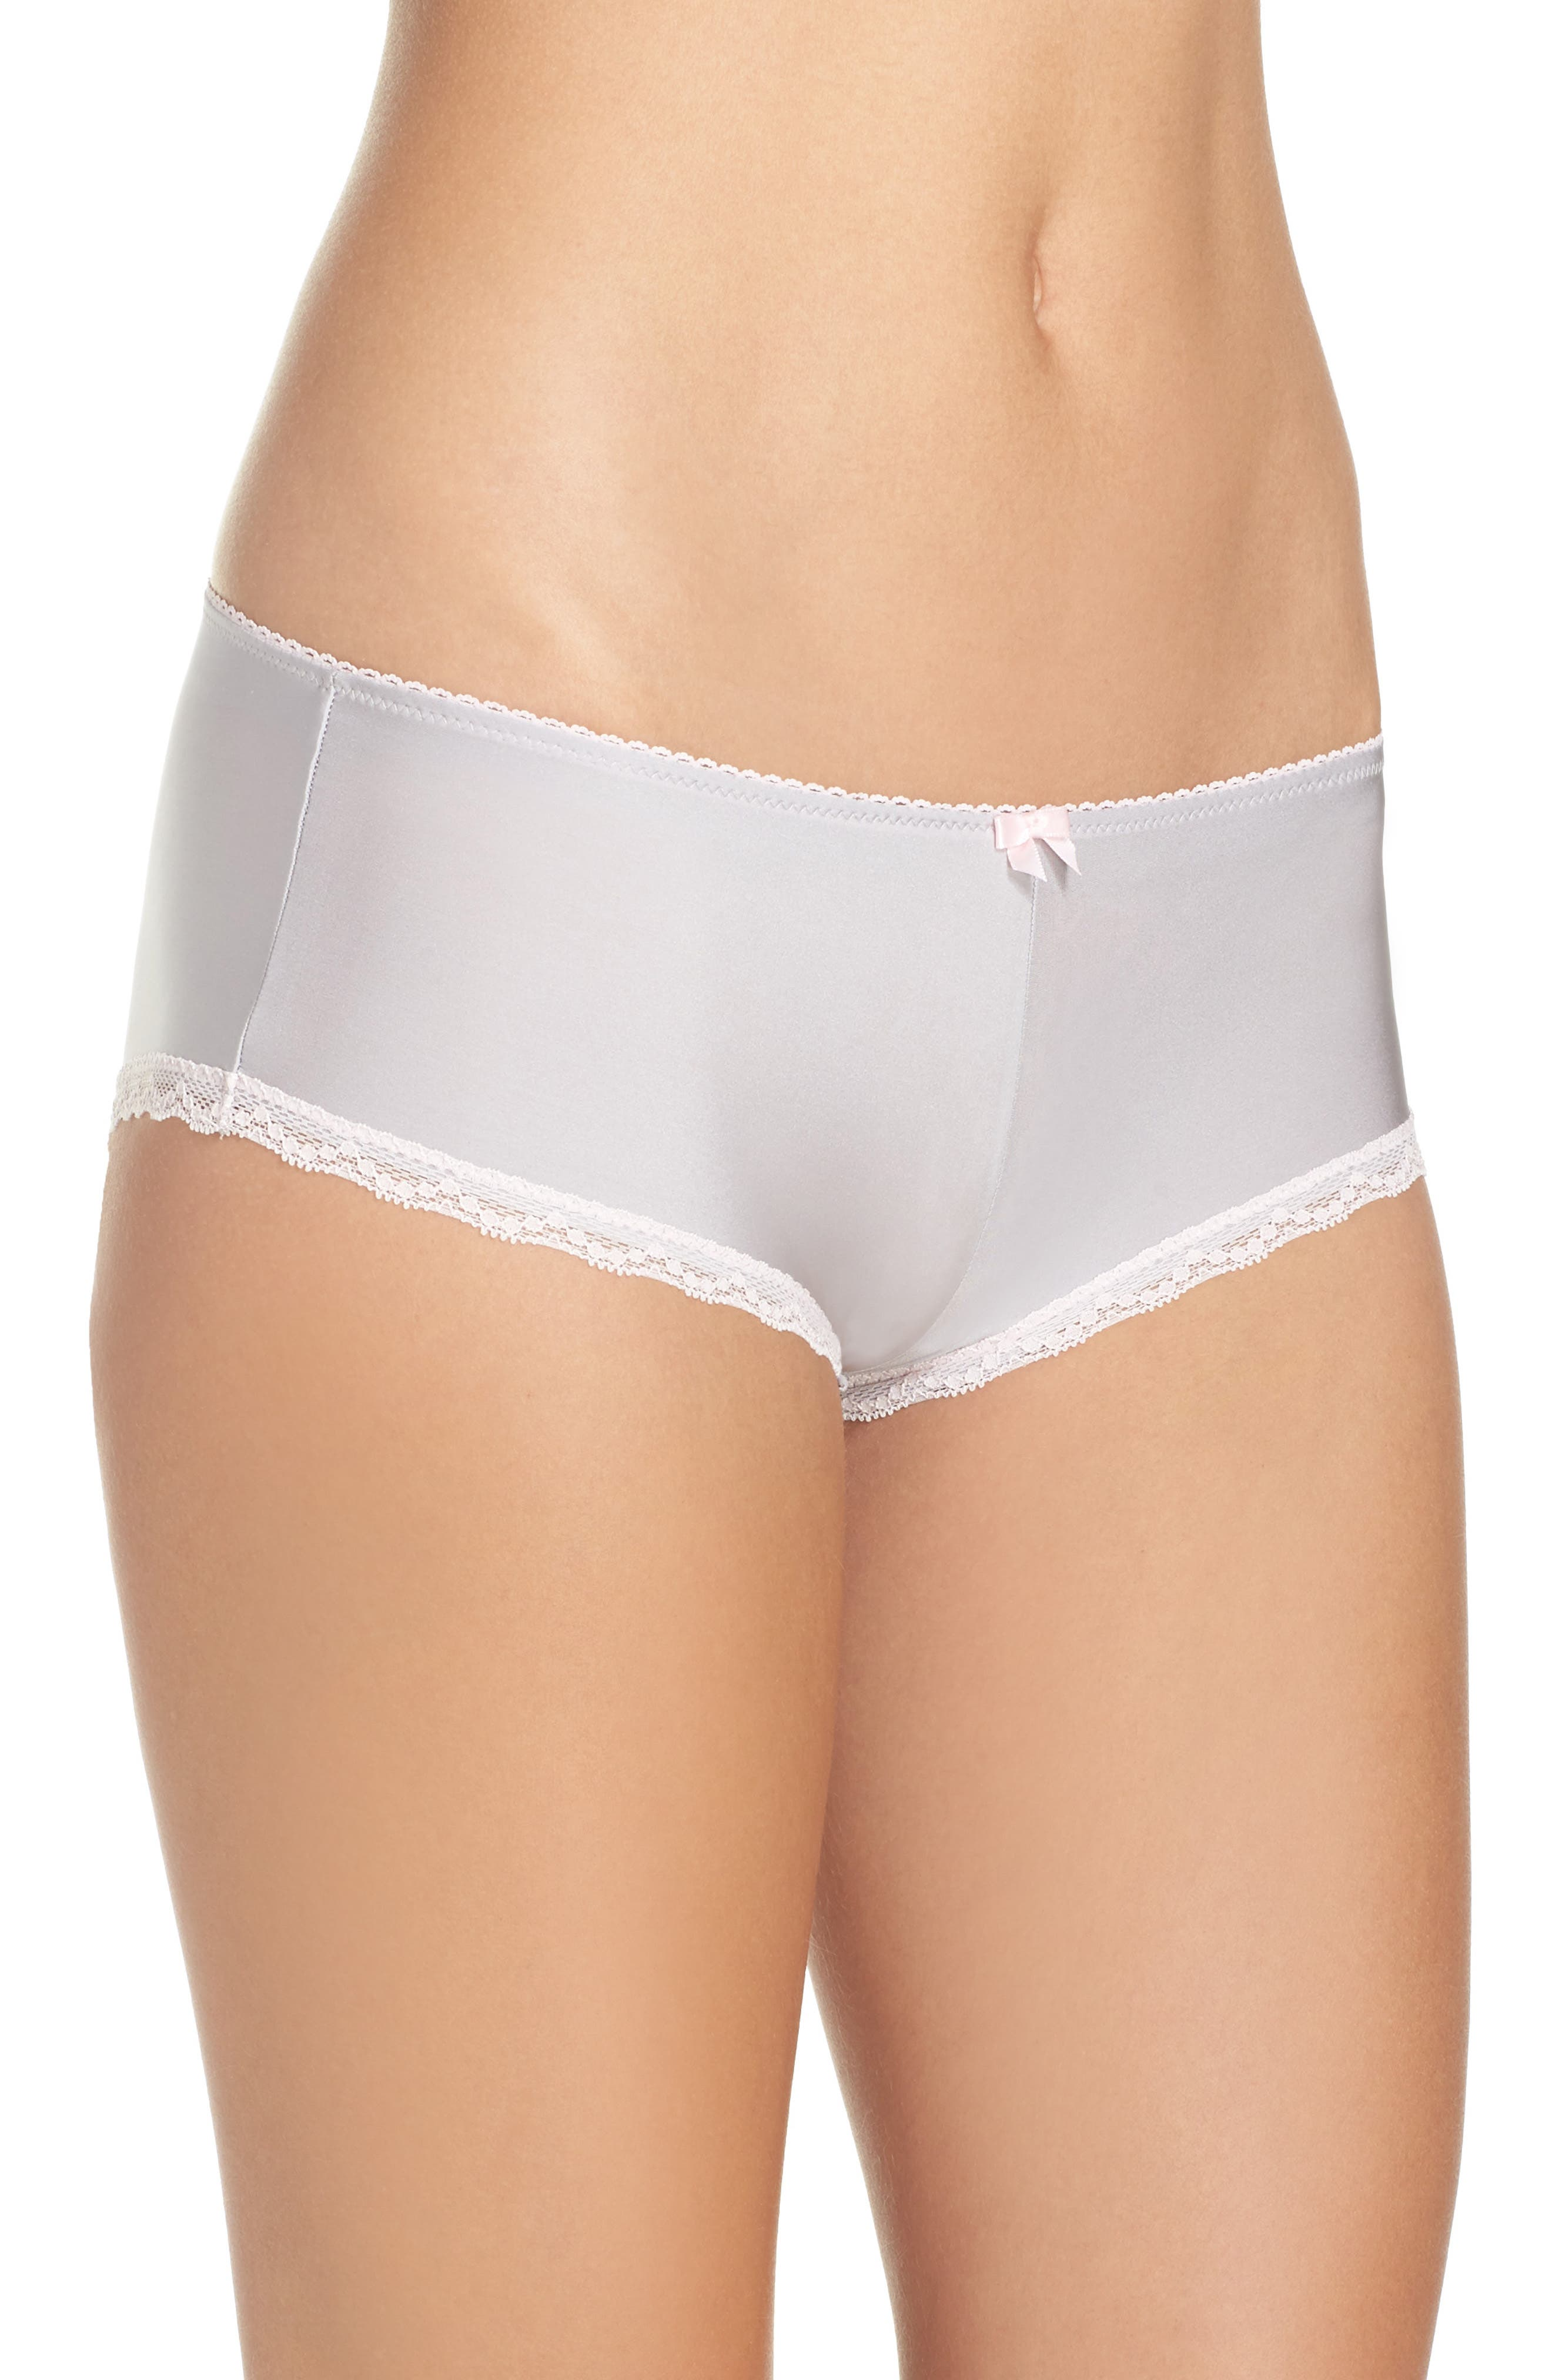 Perfectly Sexy Hipster Briefs,                             Main thumbnail 2, color,